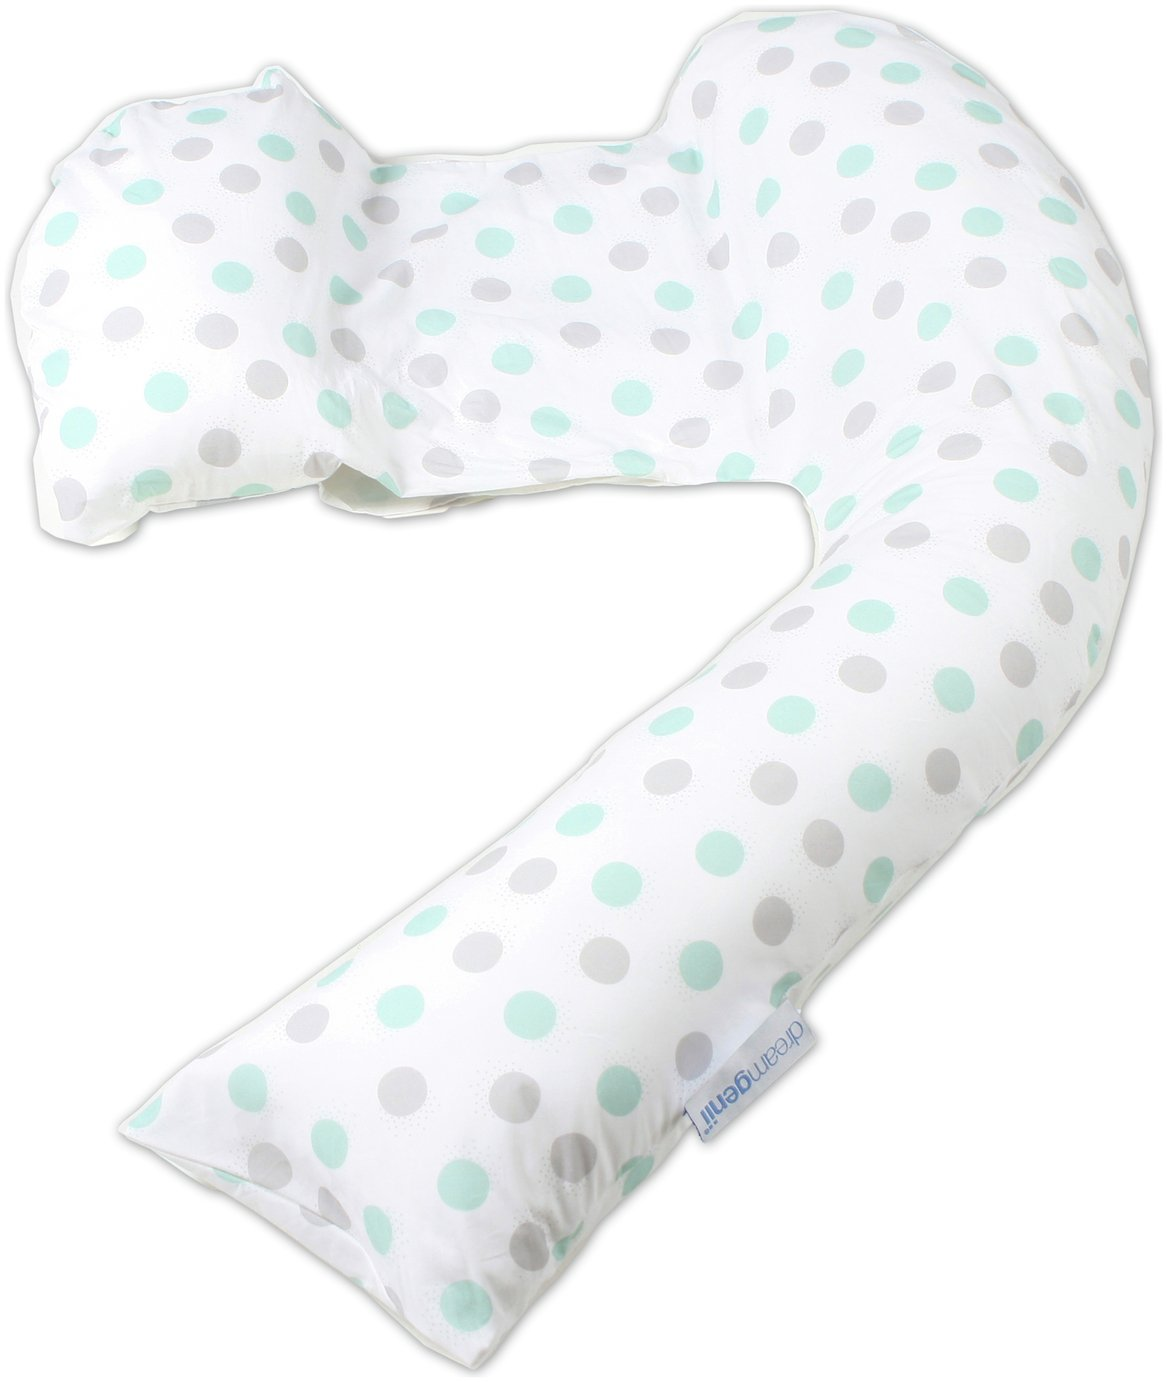 Dreamgenii Pregnancy Pillow - Grey and Aqua